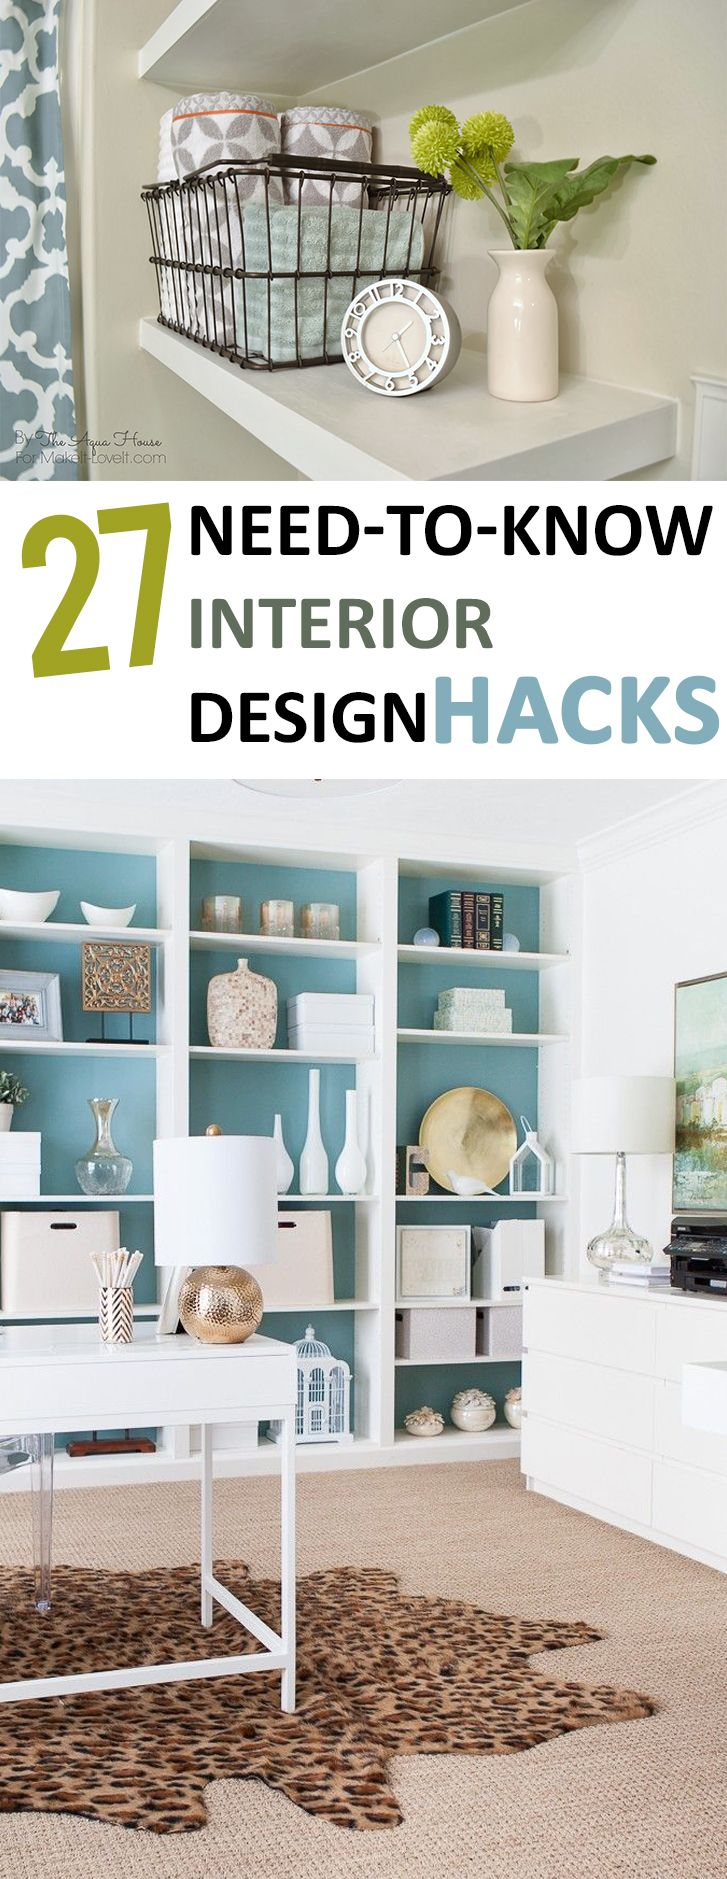 27 Need-to-Know Interior Design Hacks – Sunlit Spaces | DIY Home Decor, Holiday, and More